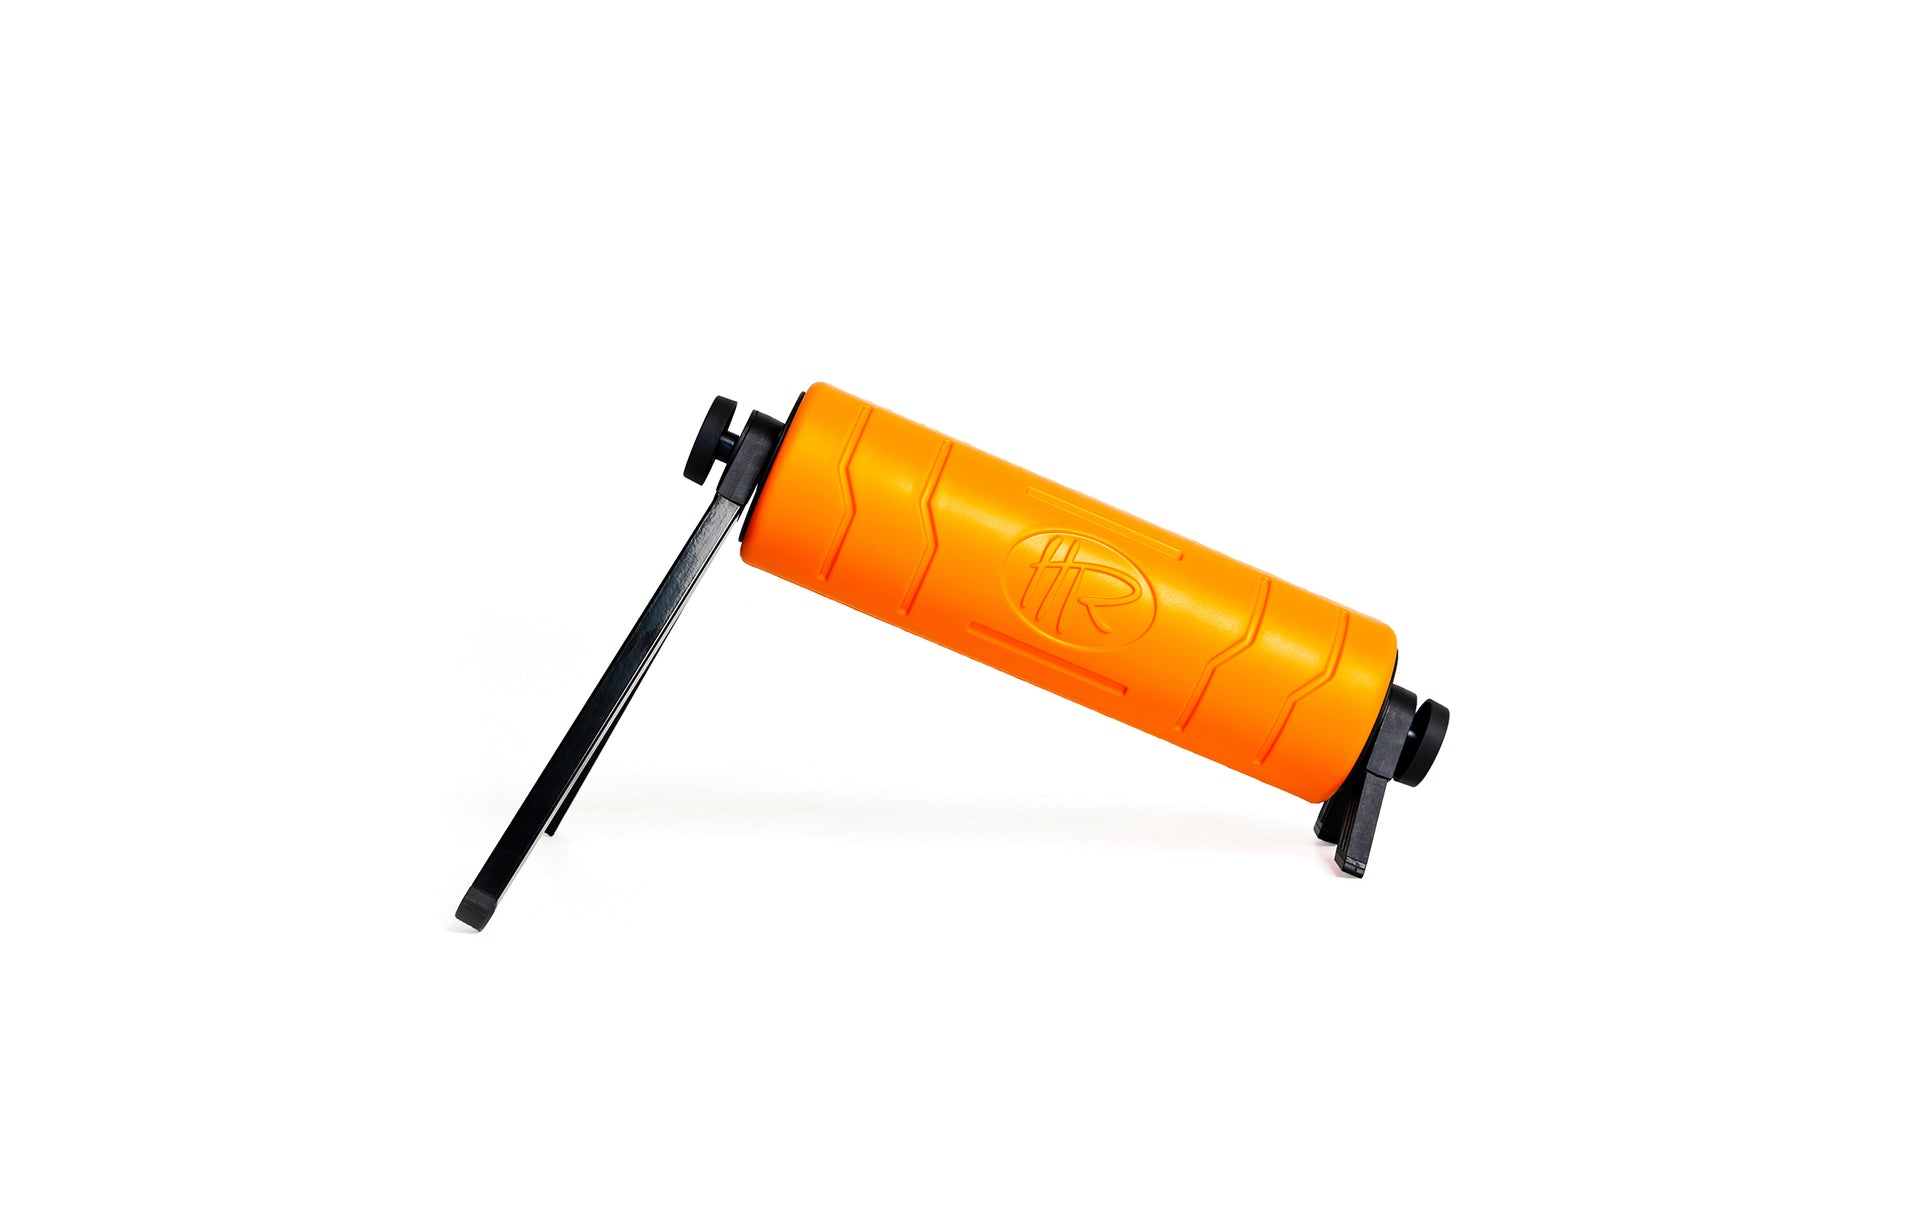 HighRoller - Elevated foam roller - PRE-ORDER